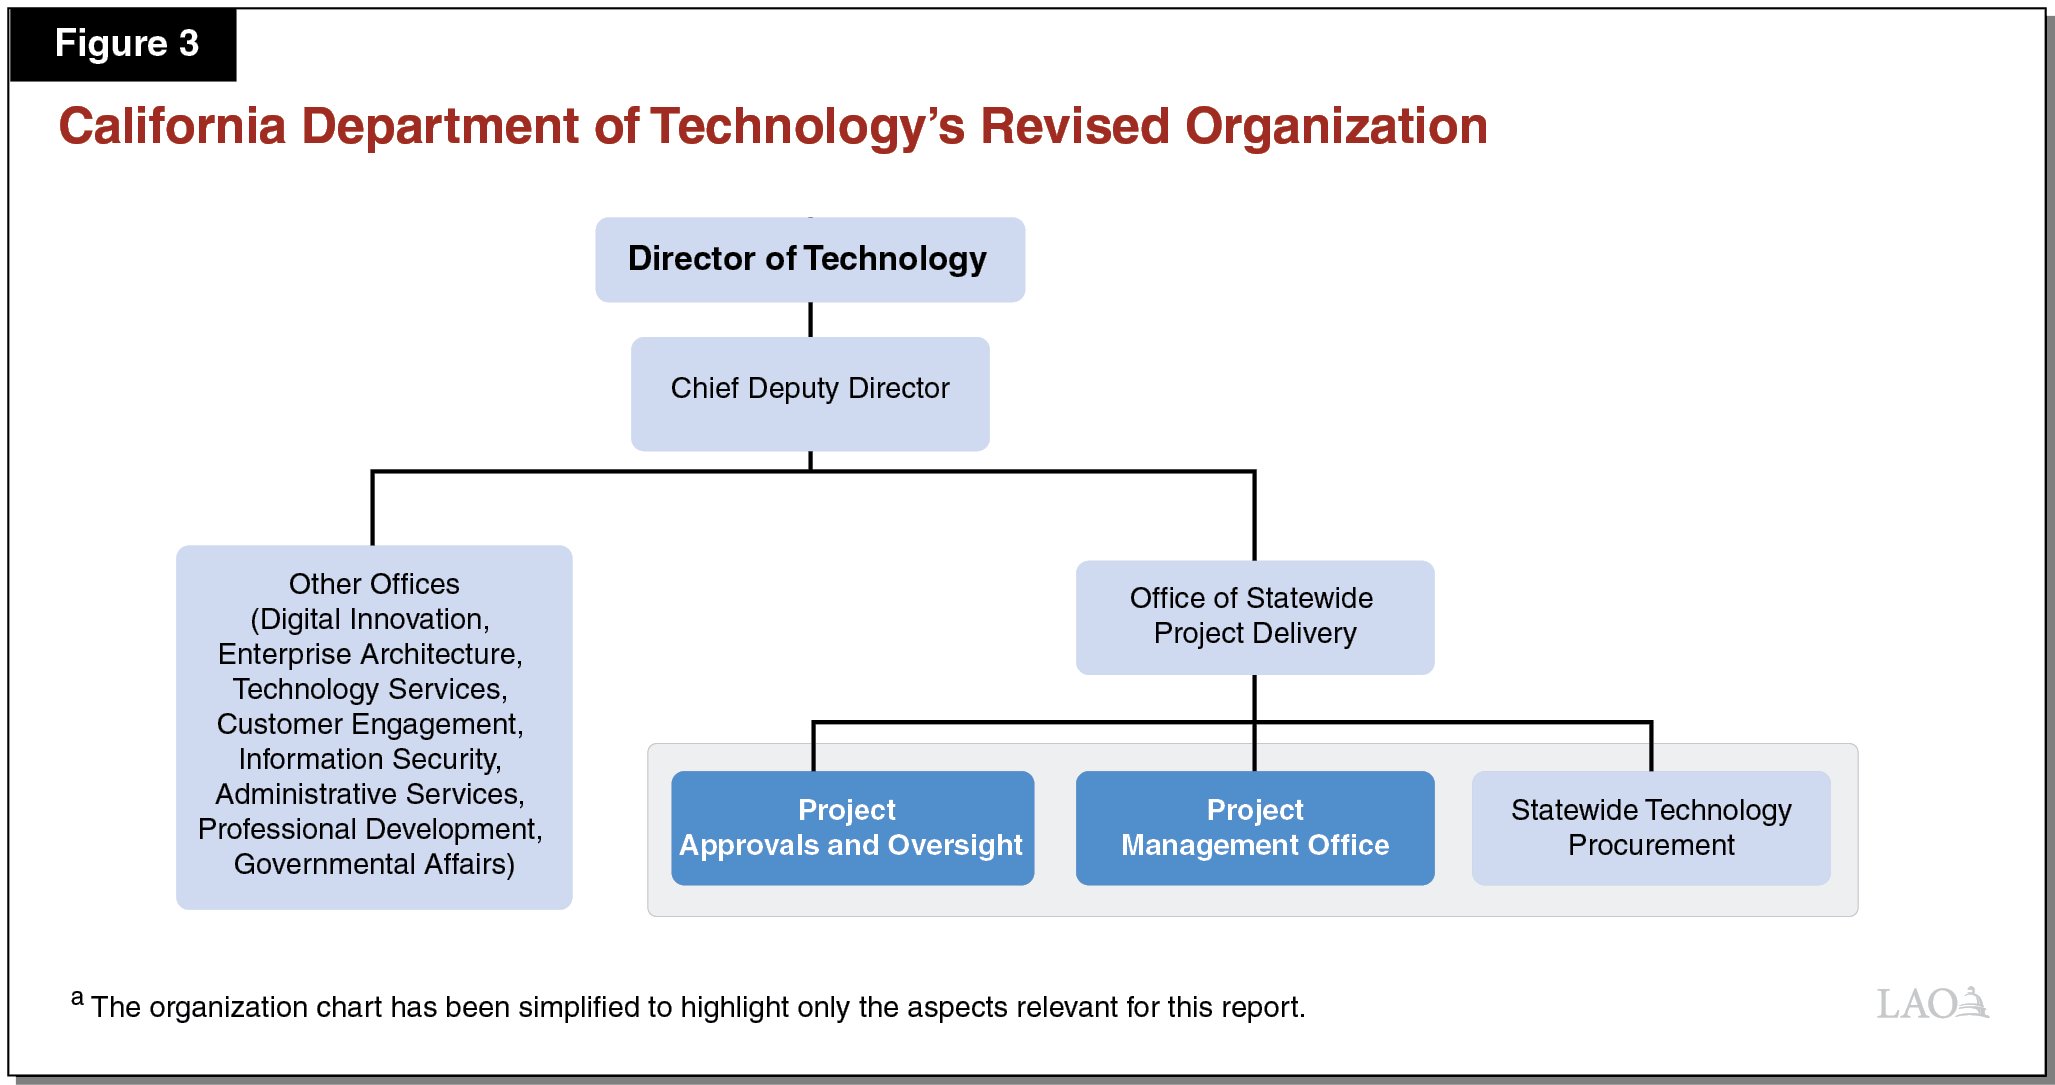 Figure 3 - California Department of Technology's Revised Organization